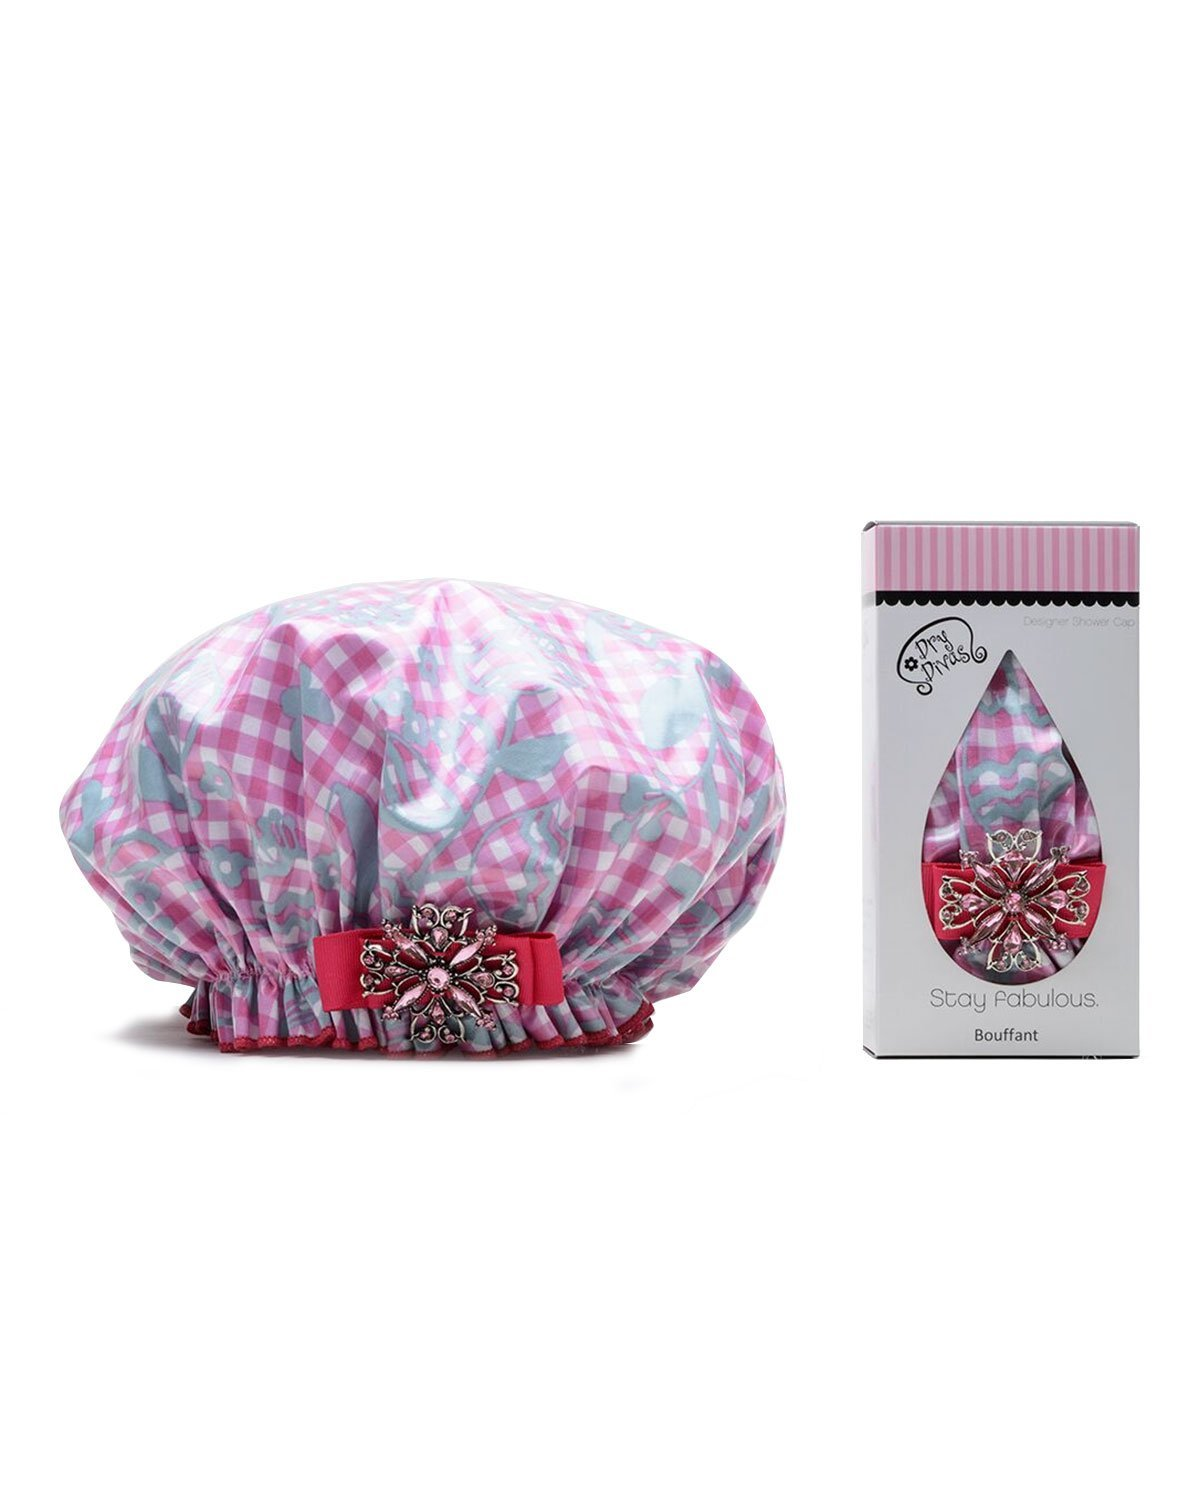 Dry Divas Designer Shower Cap For Women - Washable, Reusable - Large Bouffant Cap With Vintage Jeweled Brooch (Glorious Gingham)